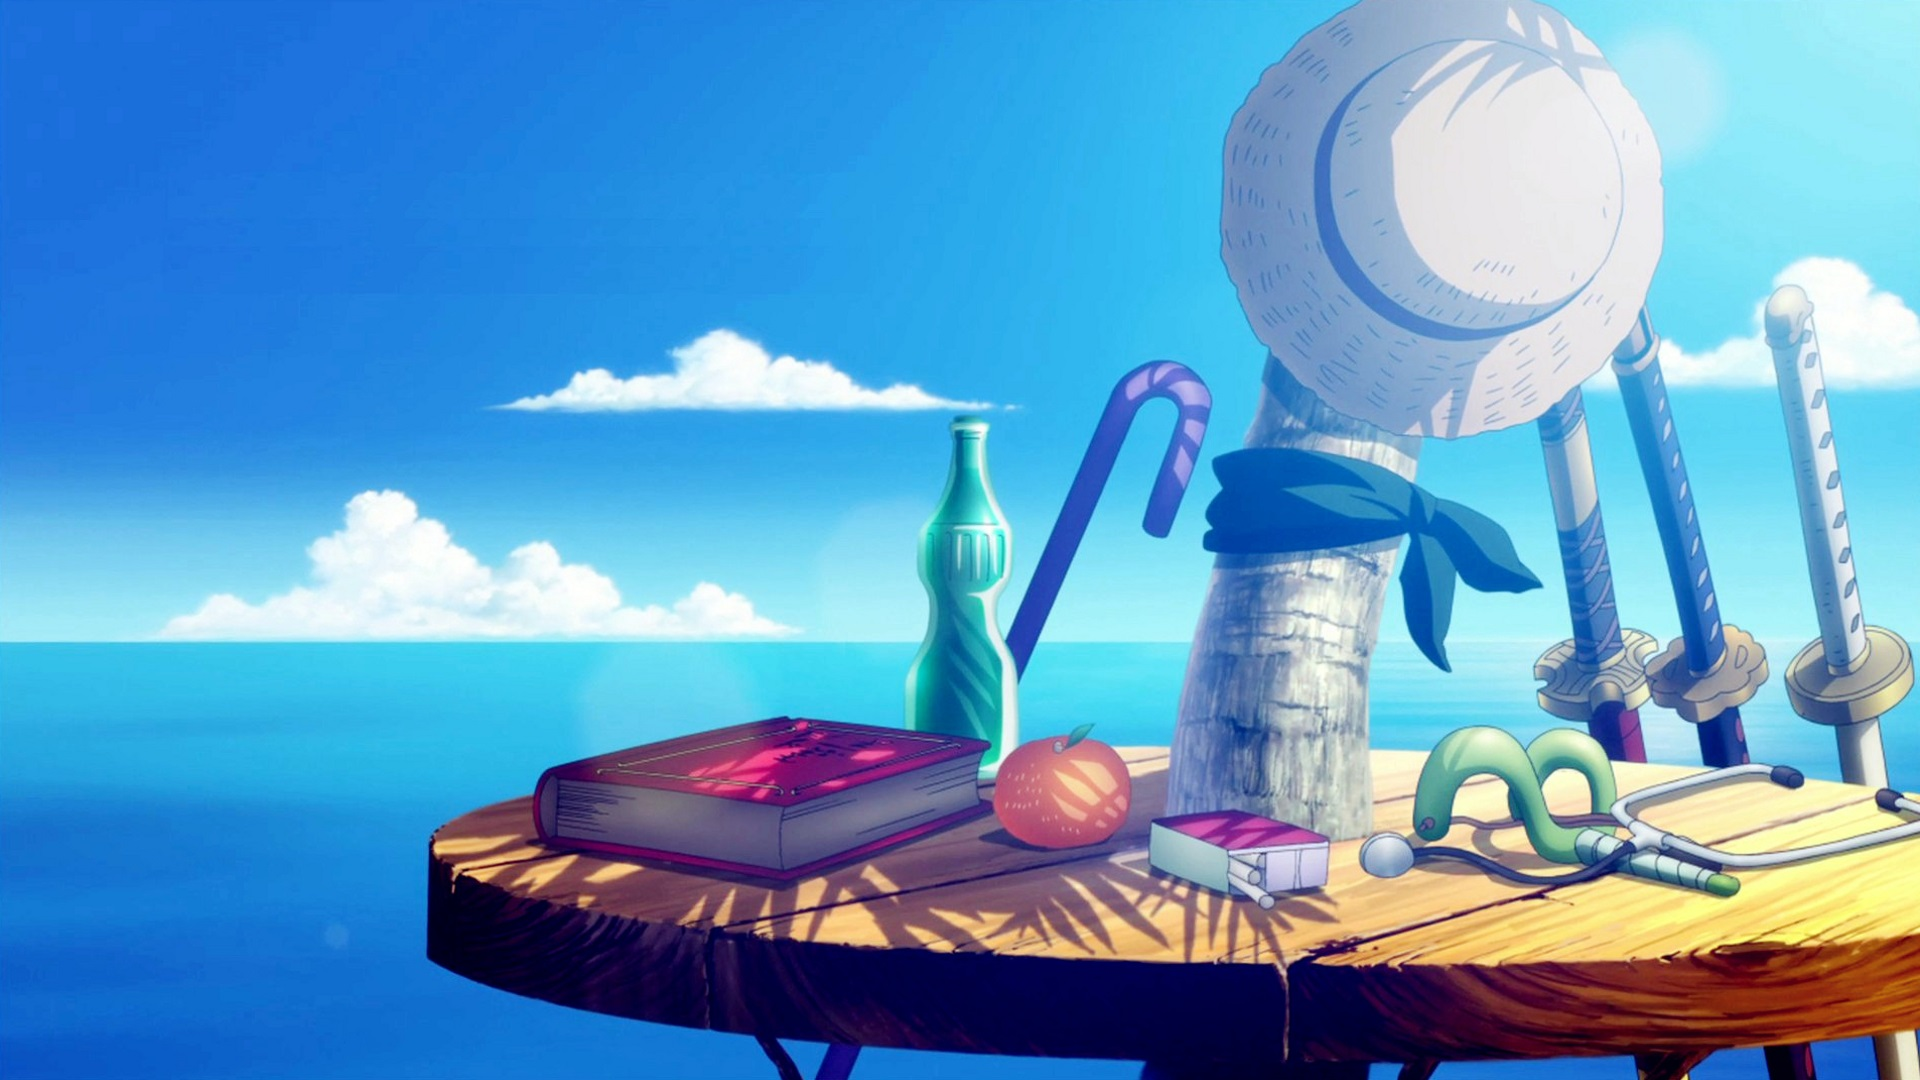 One Piece HD Wallpaper Background Image 1920x1080 ID641999 1920x1080